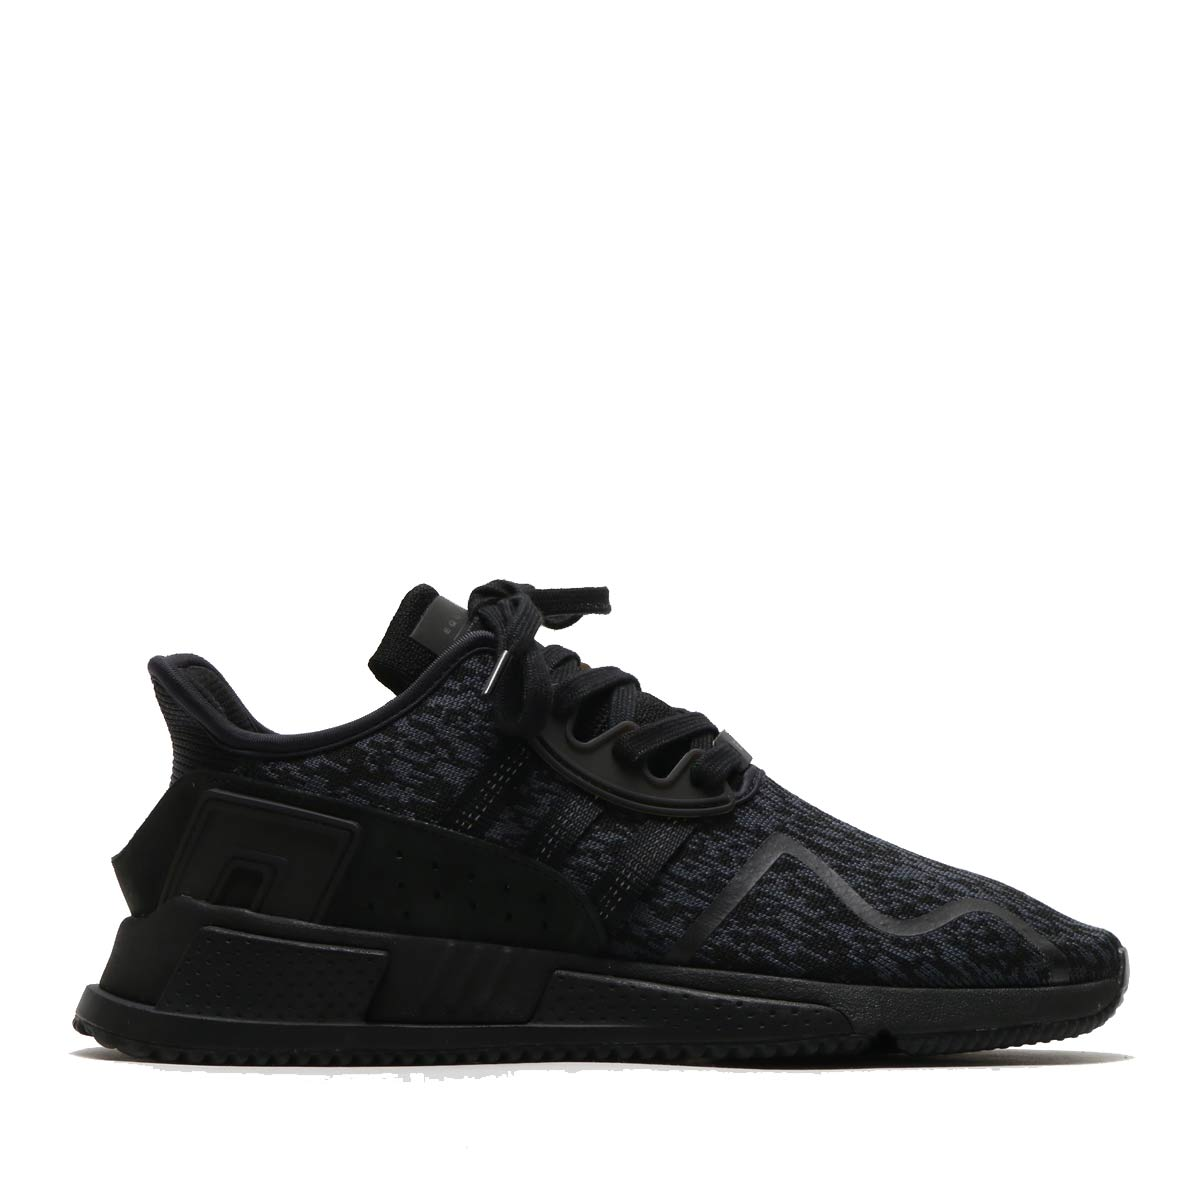 huge selection of 081a8 5f640 adidas Originals EQT CUSHION ADV (Adidas originals EQT cushion ADV) Core  Black/Core Black/Running White 17FW-I